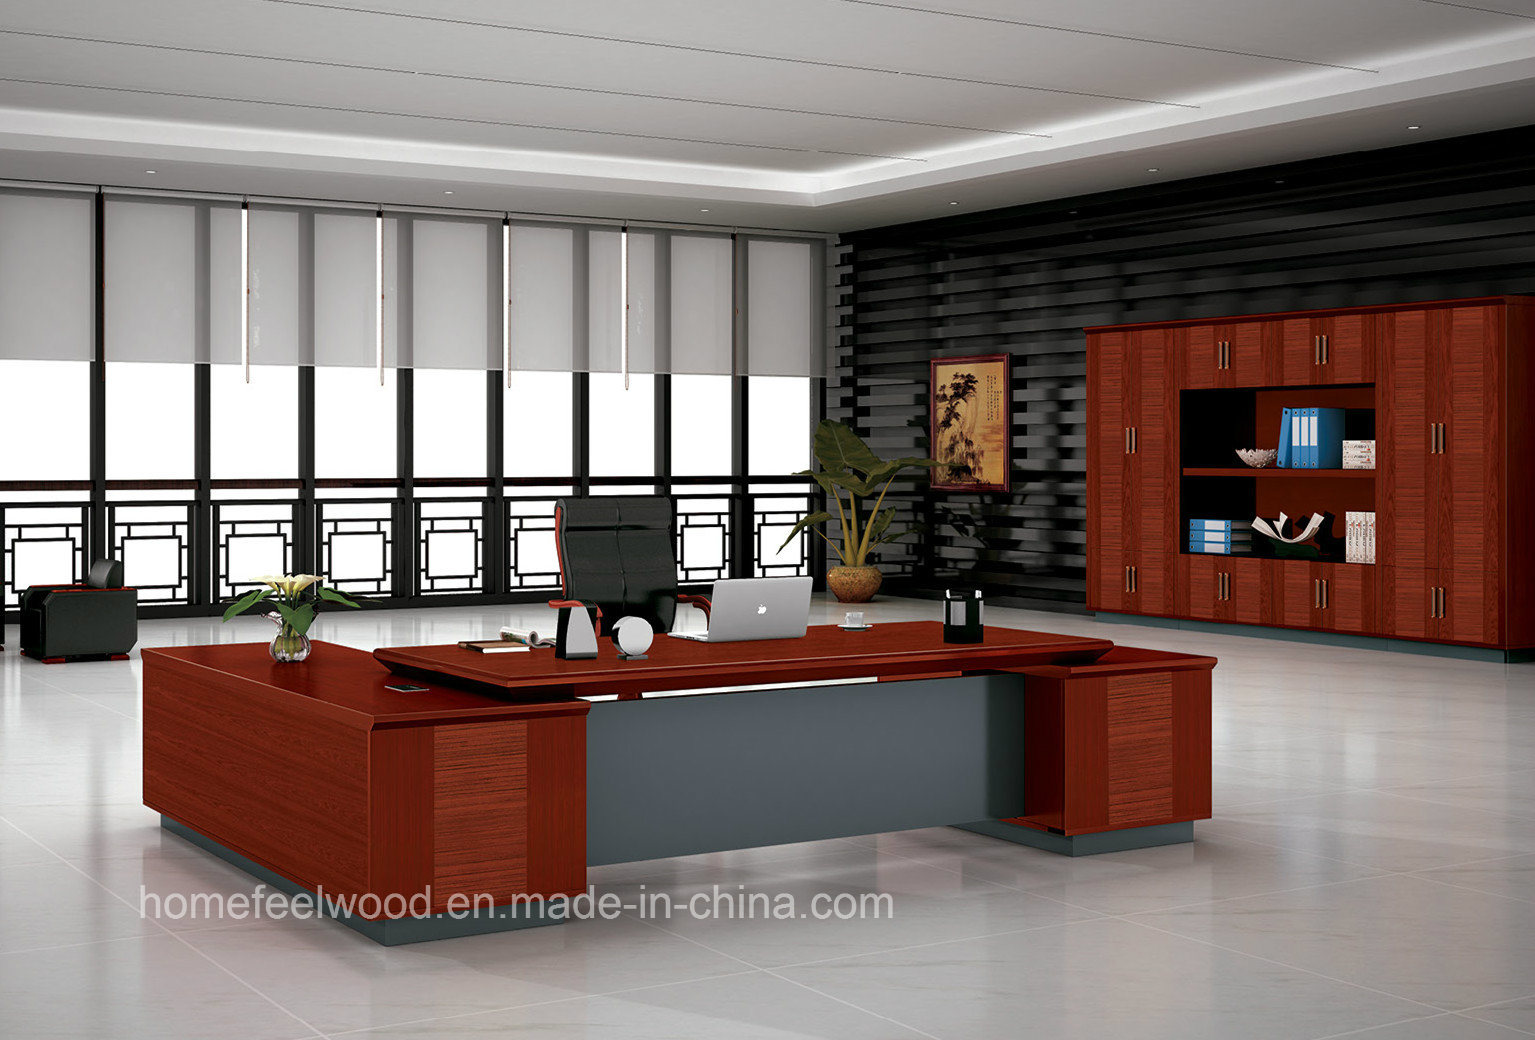 Luxury Executive Office Table Specifications Boss Office Furniture Set (HF-FB16538) & China Luxury Executive Office Table Specifications Boss Office ...